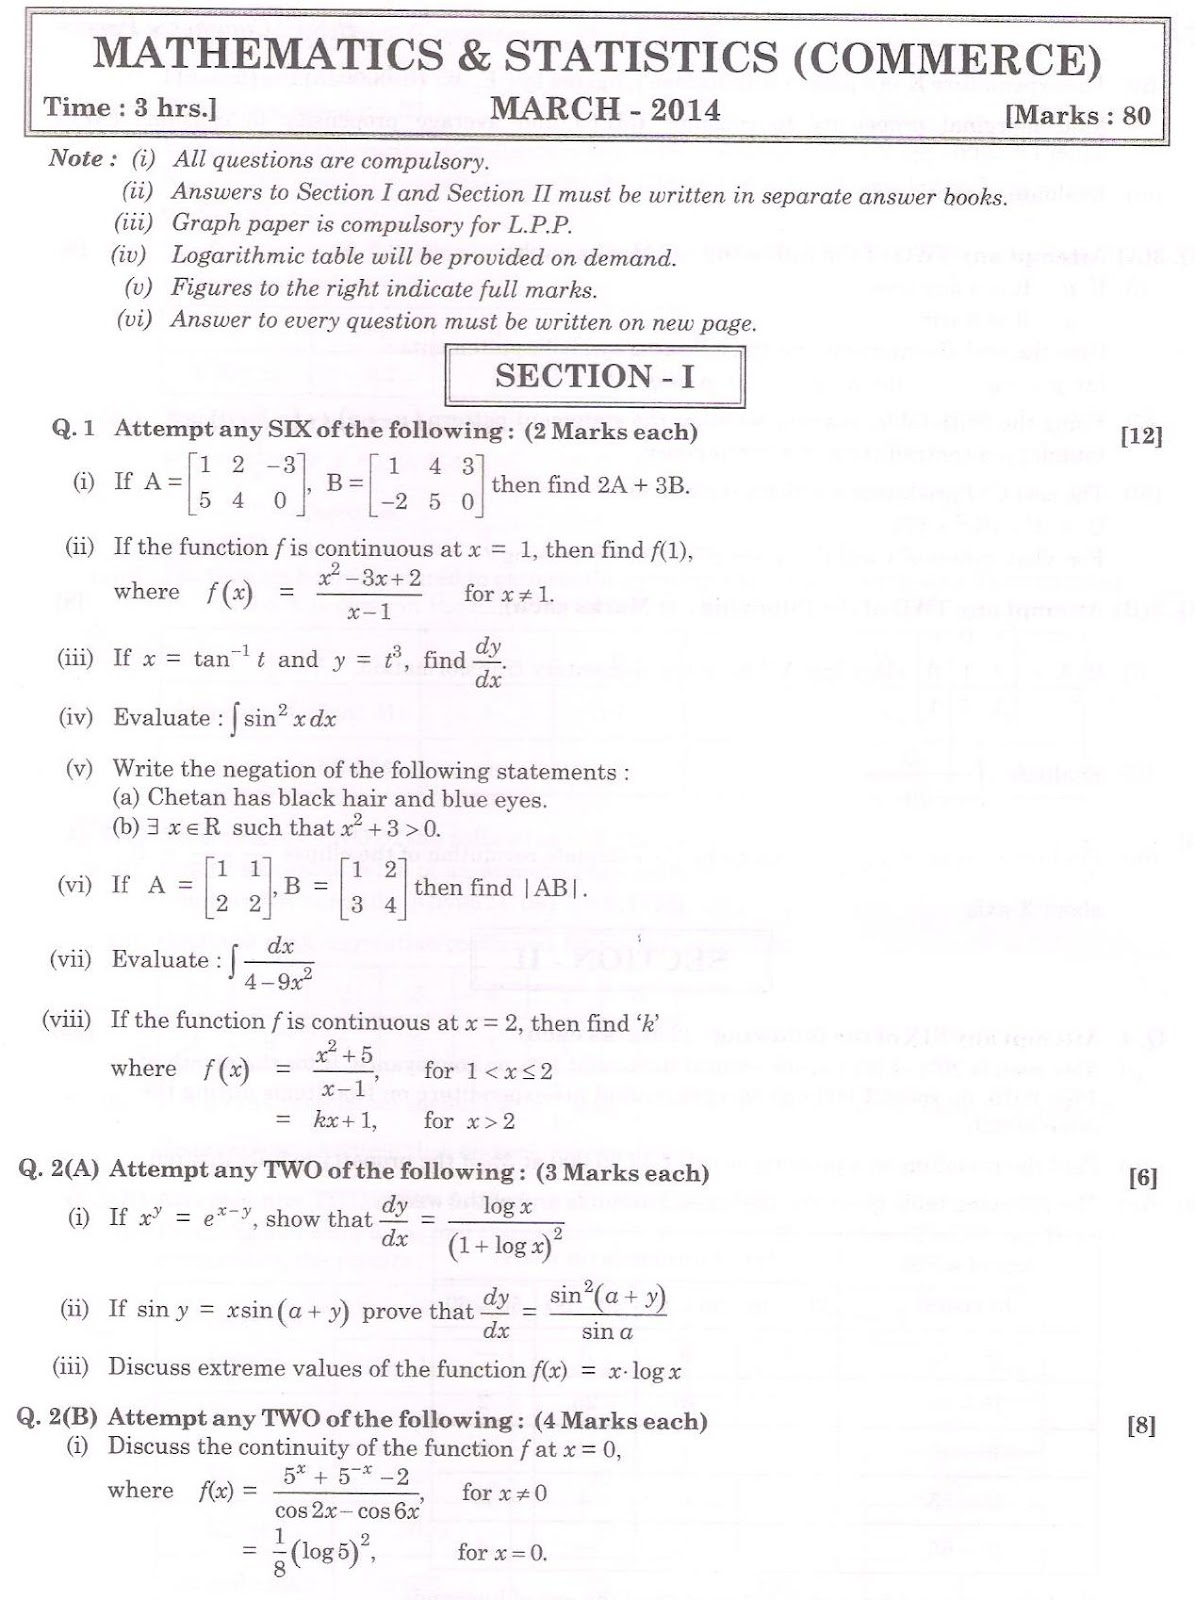 Omtex classes hsc commerce maths march 2014 board question paper hsc commerce maths march 2014 board question paper malvernweather Gallery